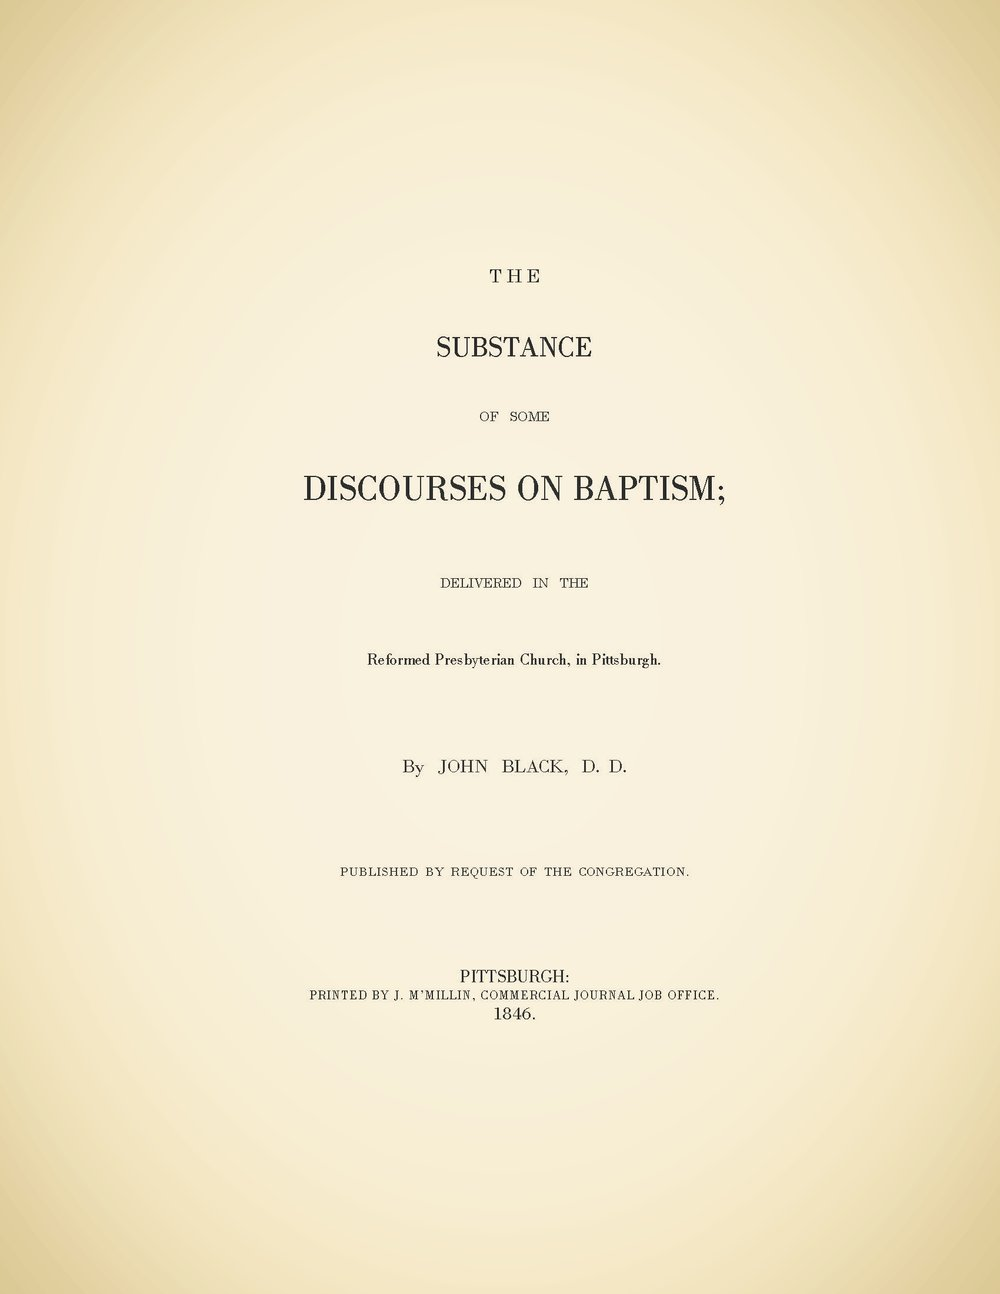 Black, John, The Substance of Some Discourses of Baptism Title Page.jpg